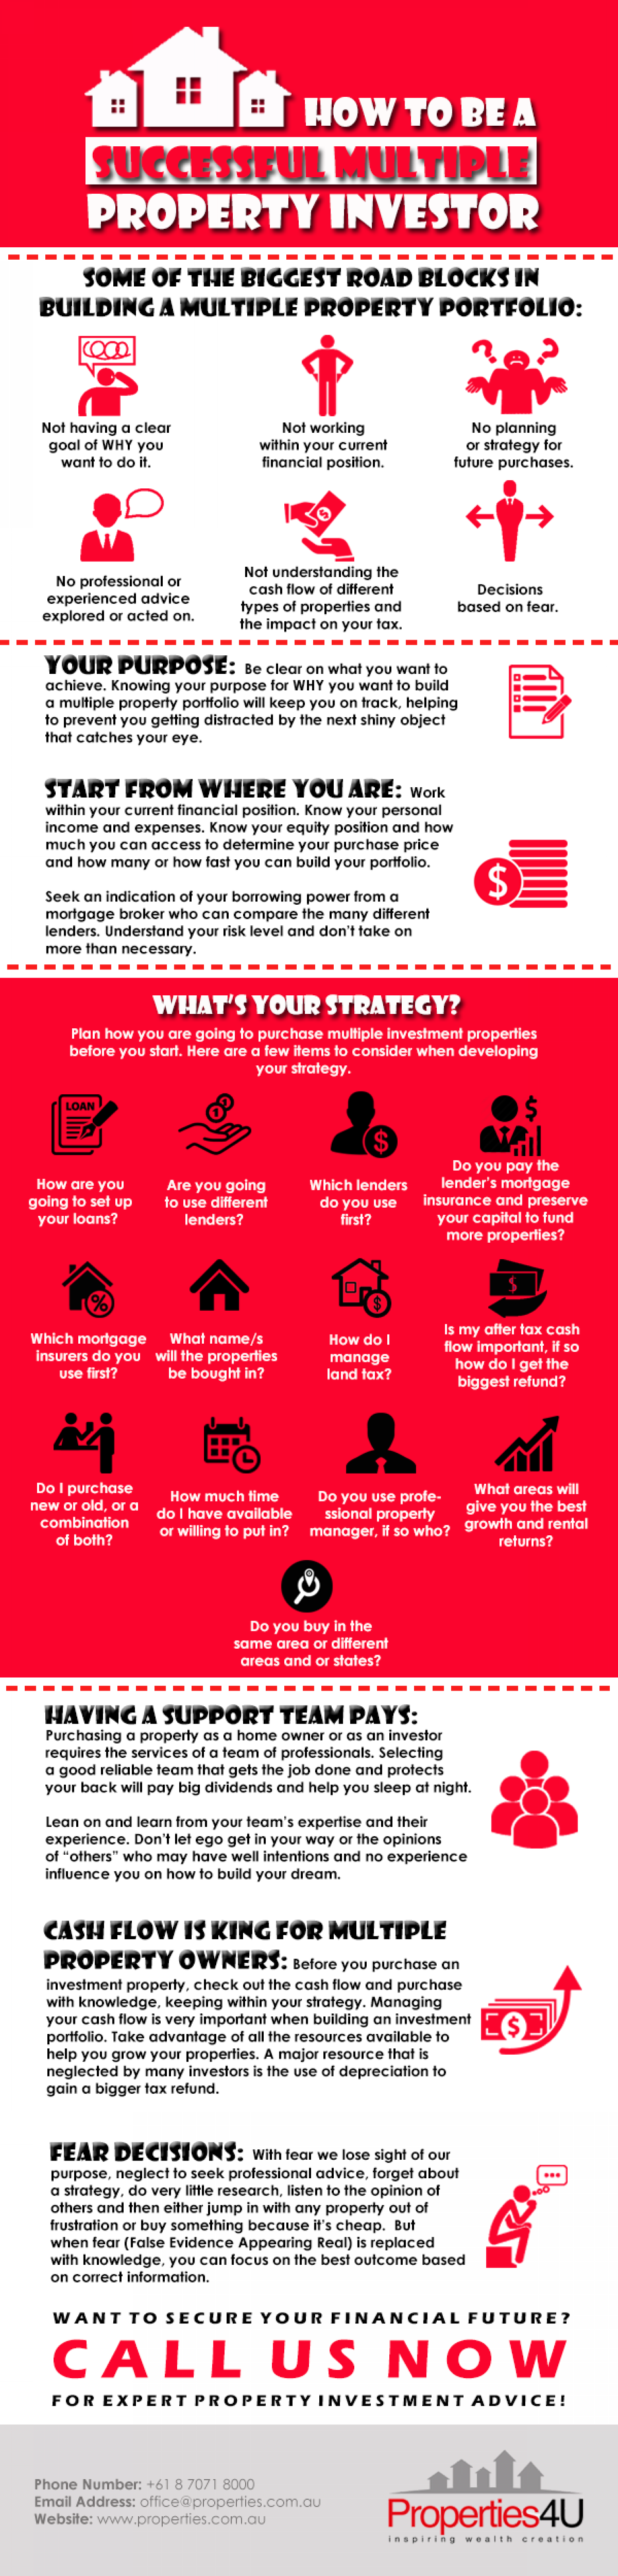 How to be a Successful Multiple Property Investor Infographic